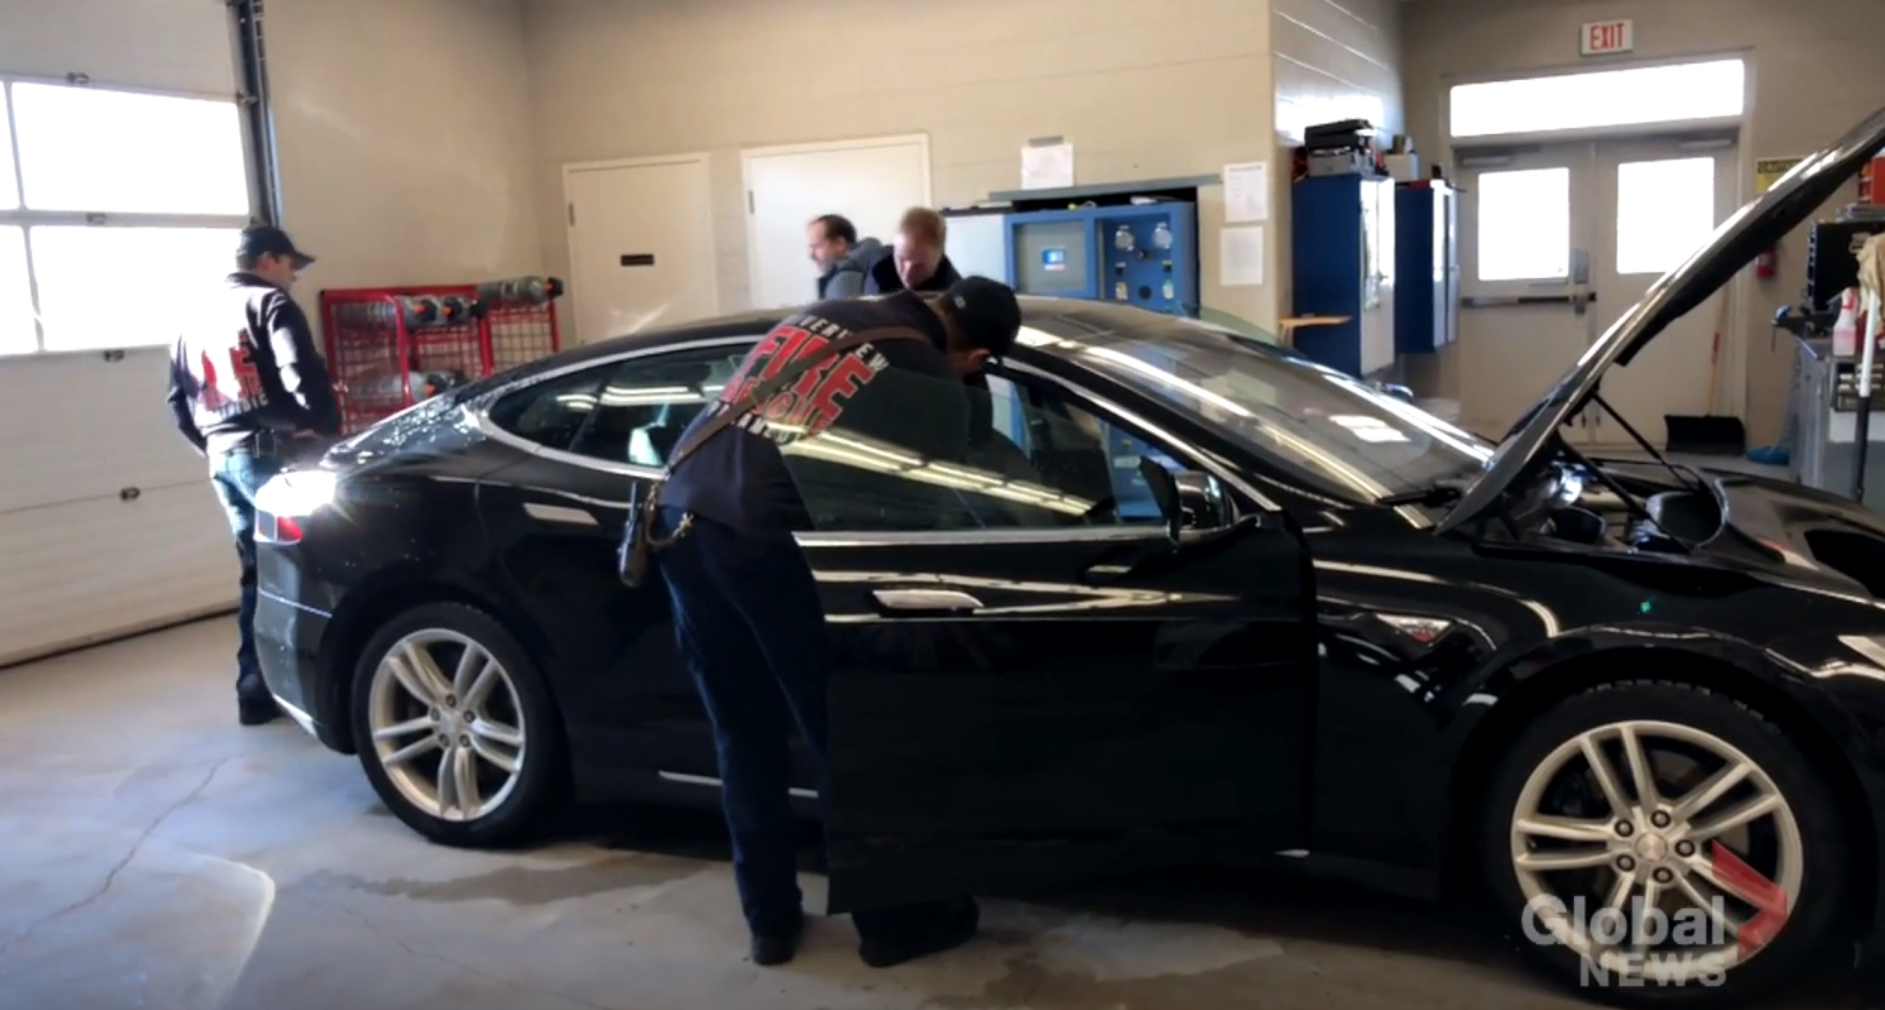 Tesla Model S firefighter training